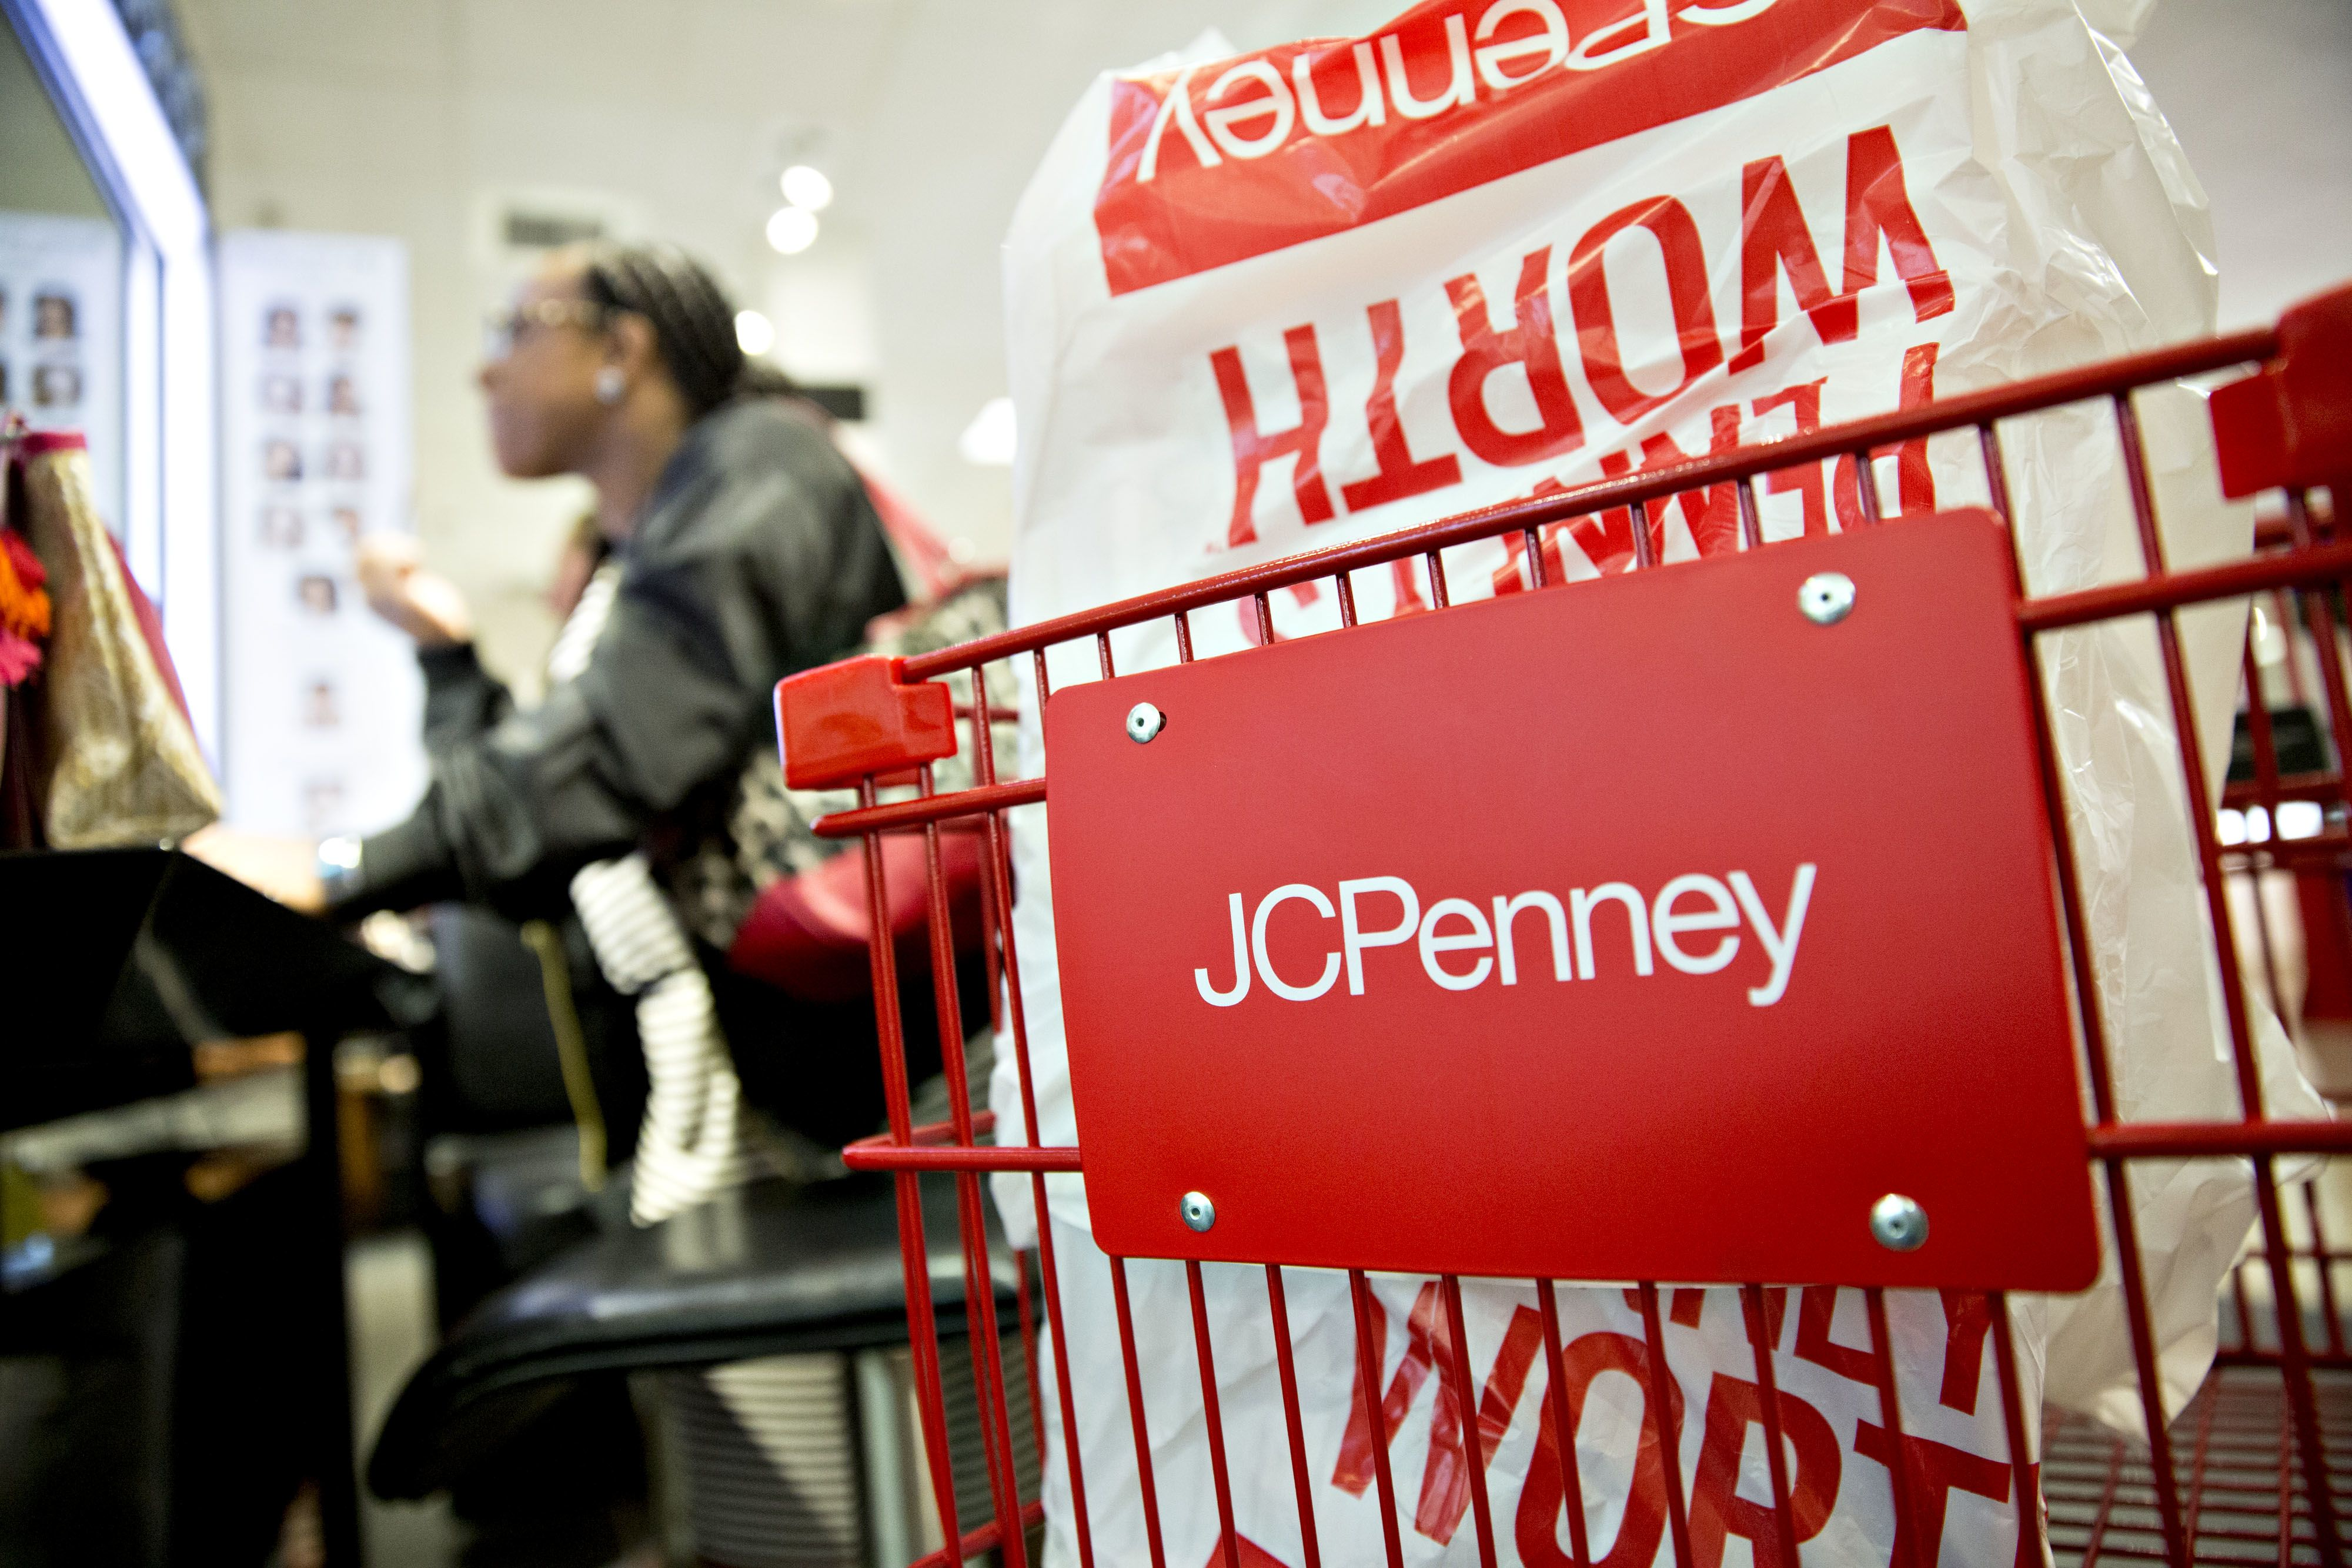 JC Penney taps debt restructuring advisors: Sources